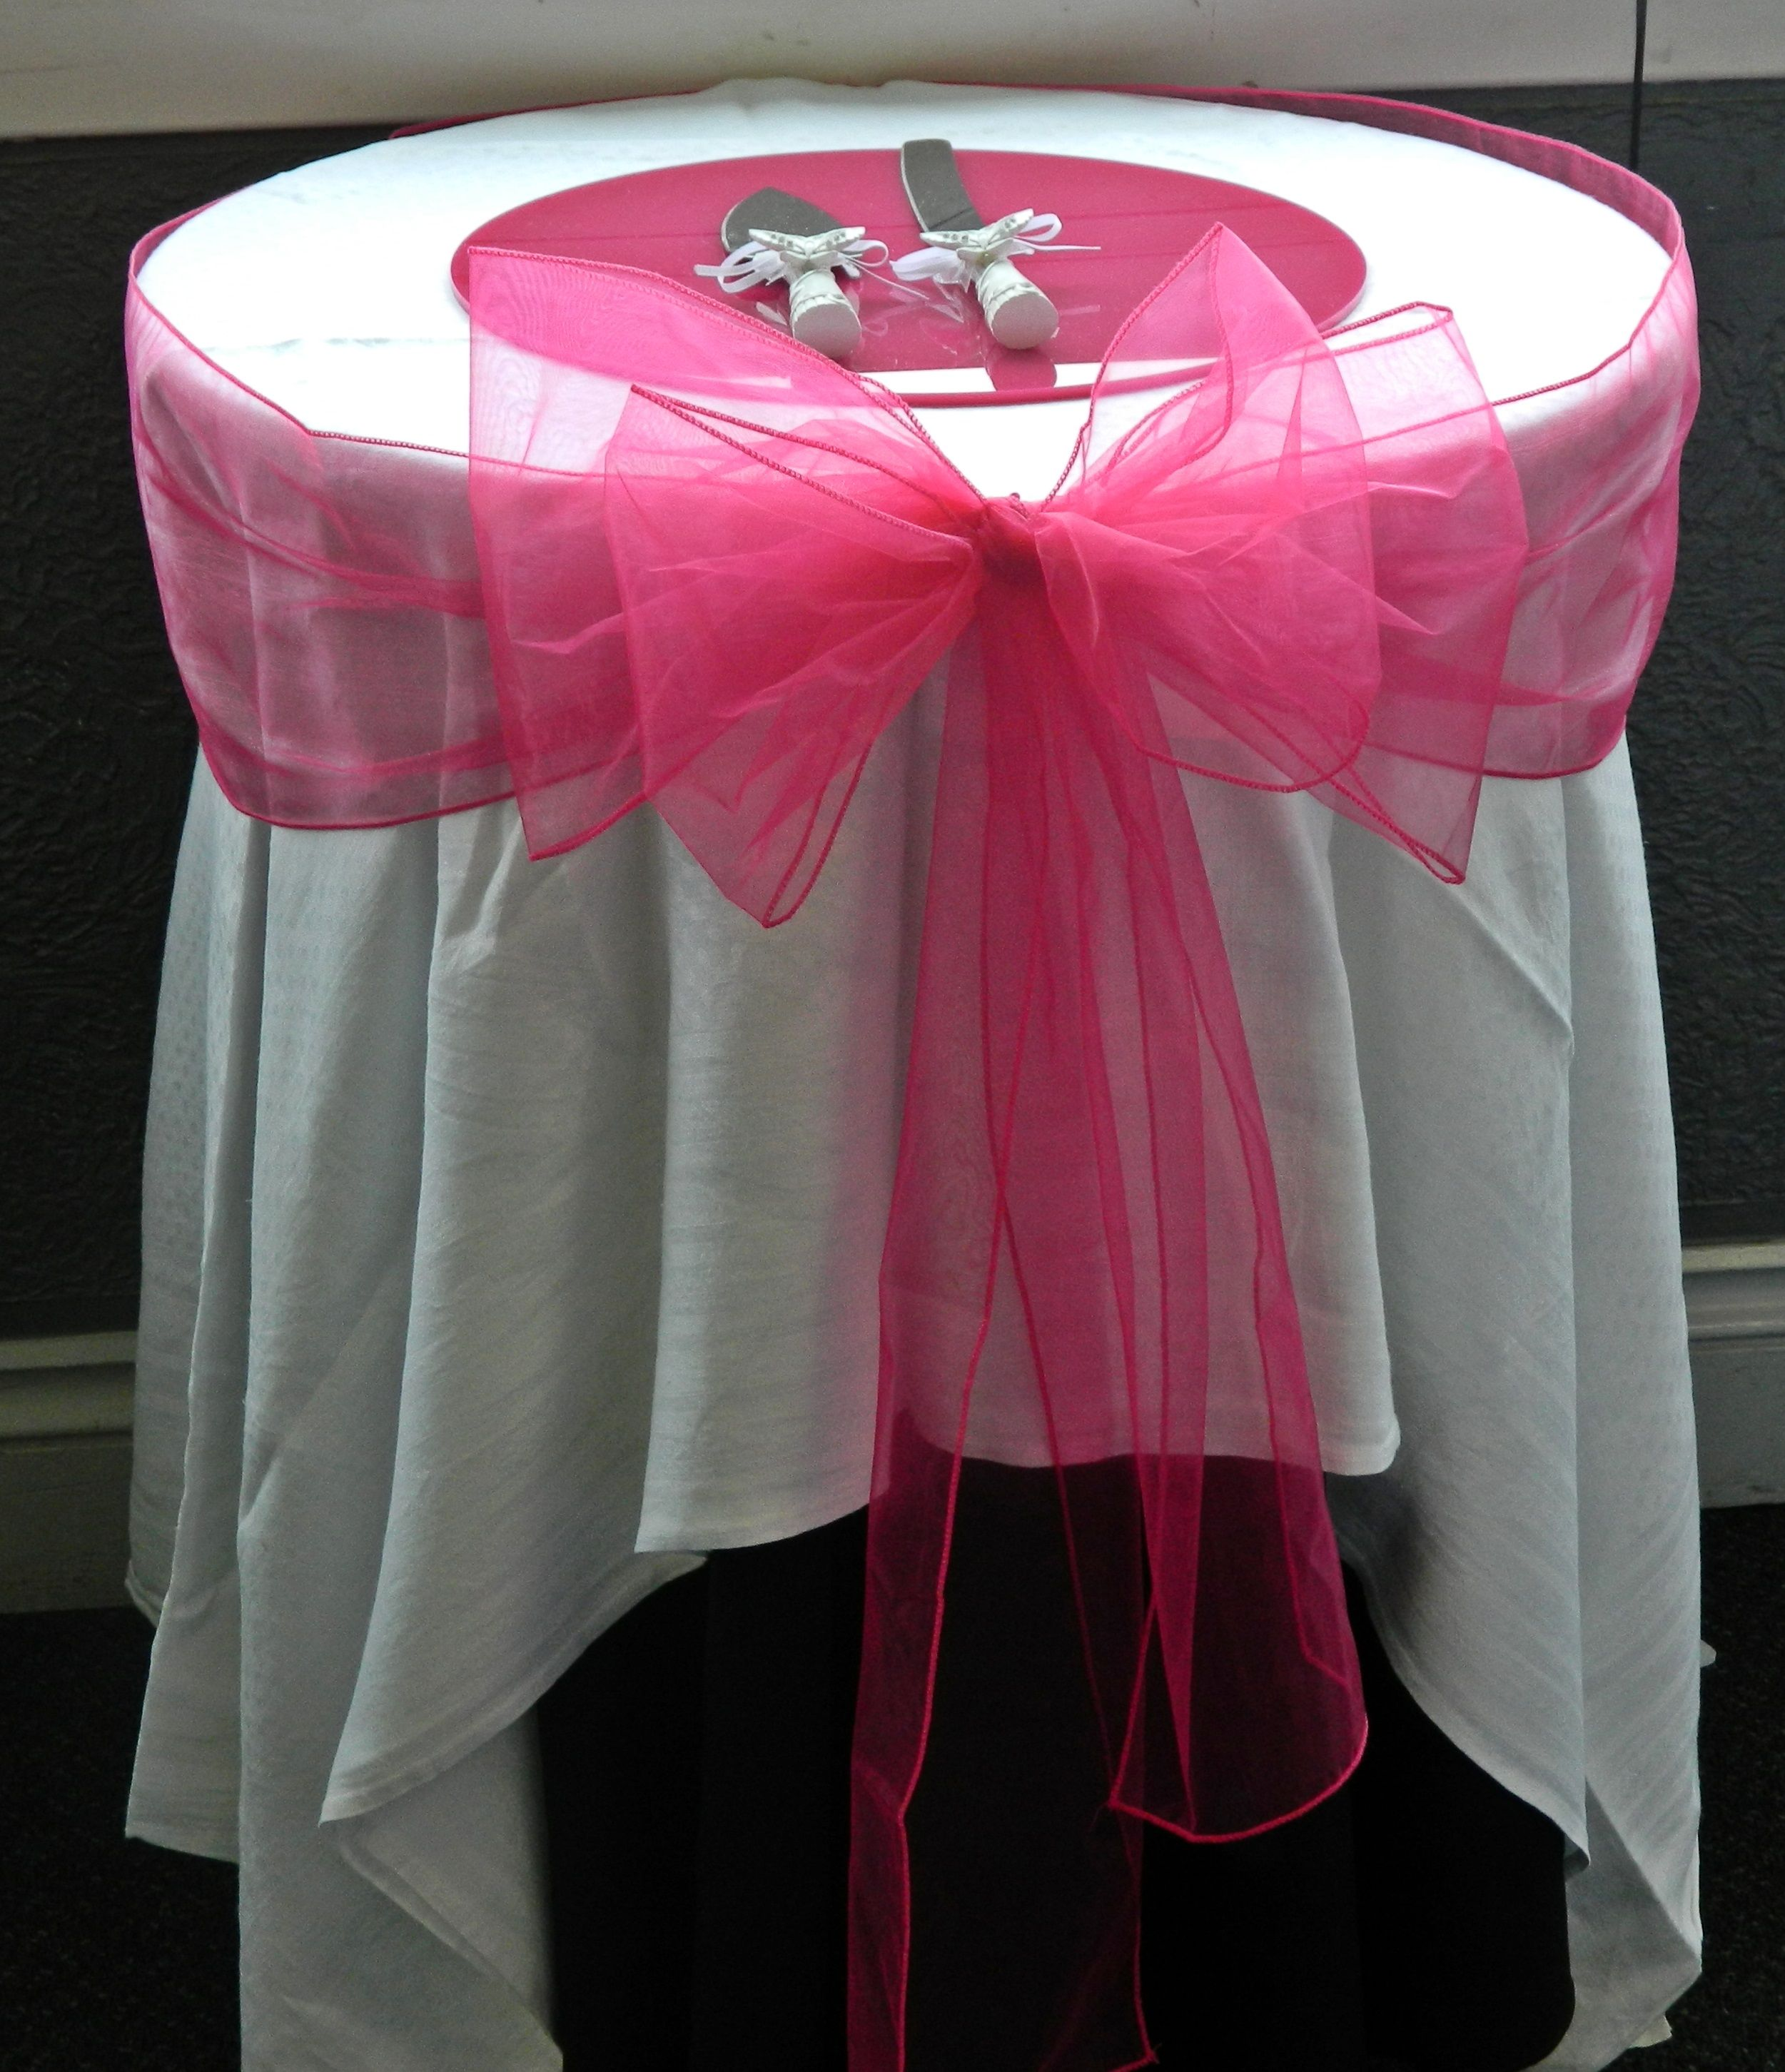 Wedding anniversary decorations at home  FushiaHot pink wedding cake table coulda had a better table cloth